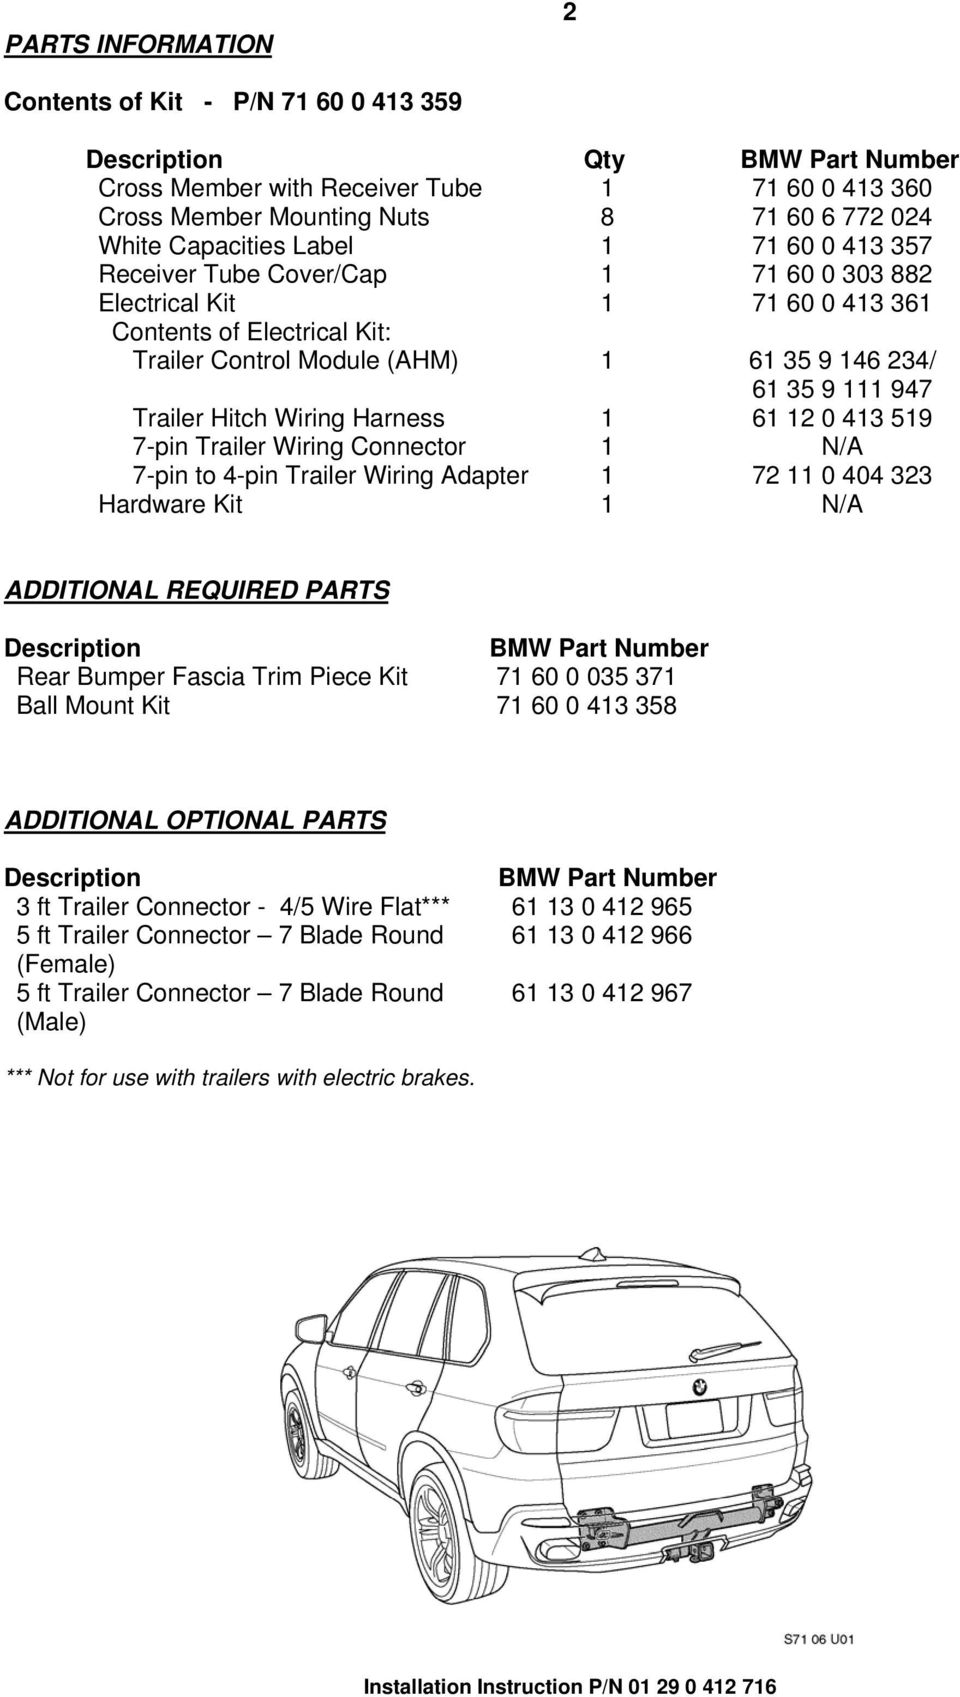 Installation Instructions Pdf 5 Wire Trailer Hitch Harness 947 Wiring 1 61 12 0 413 519 7 Pin